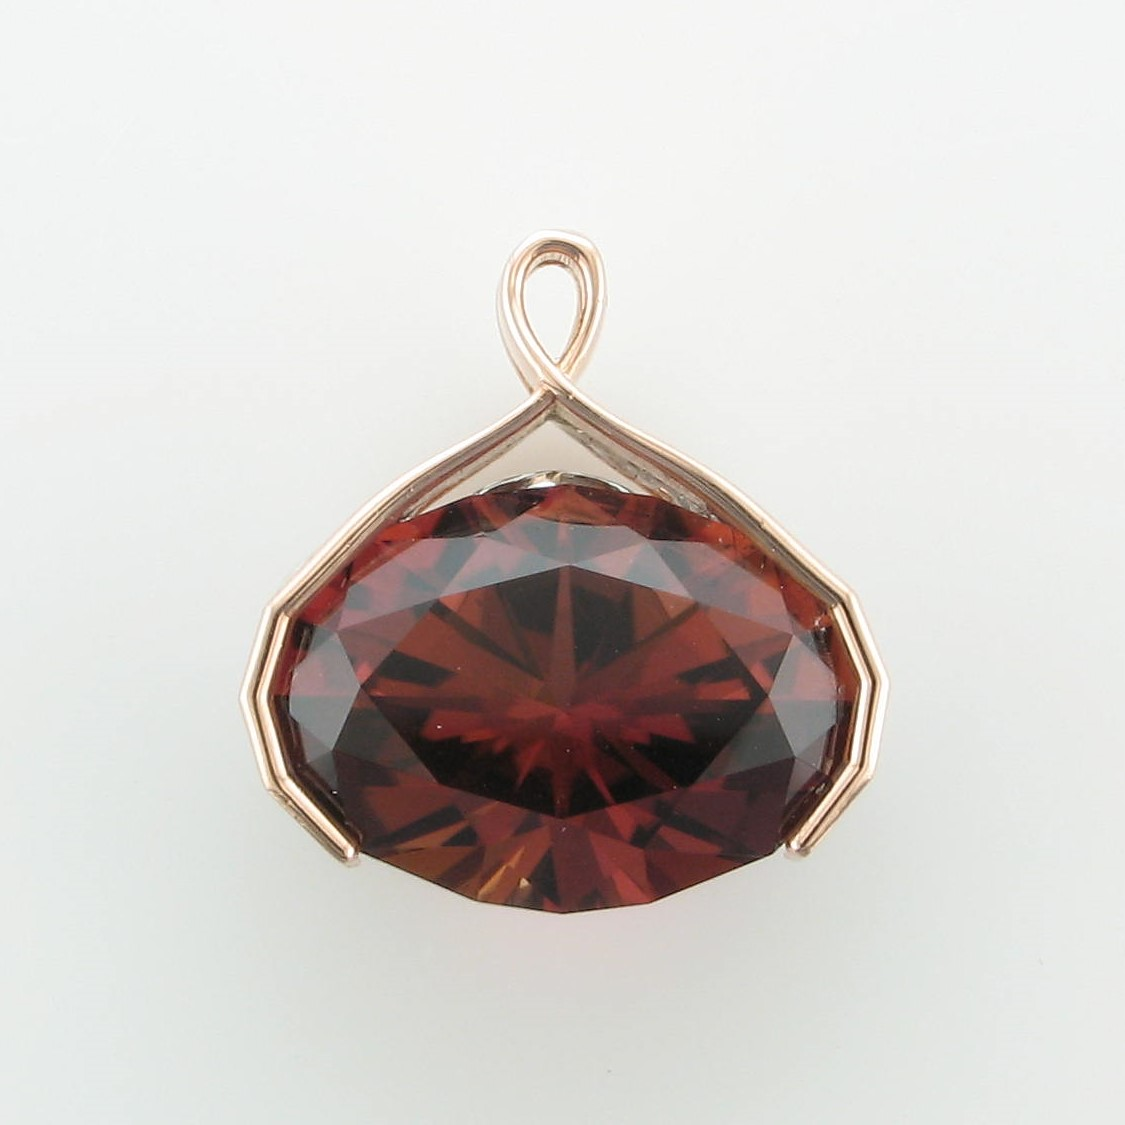 13.88ct Copper Tourmaline Pendant set in 14K Rose & White Gold